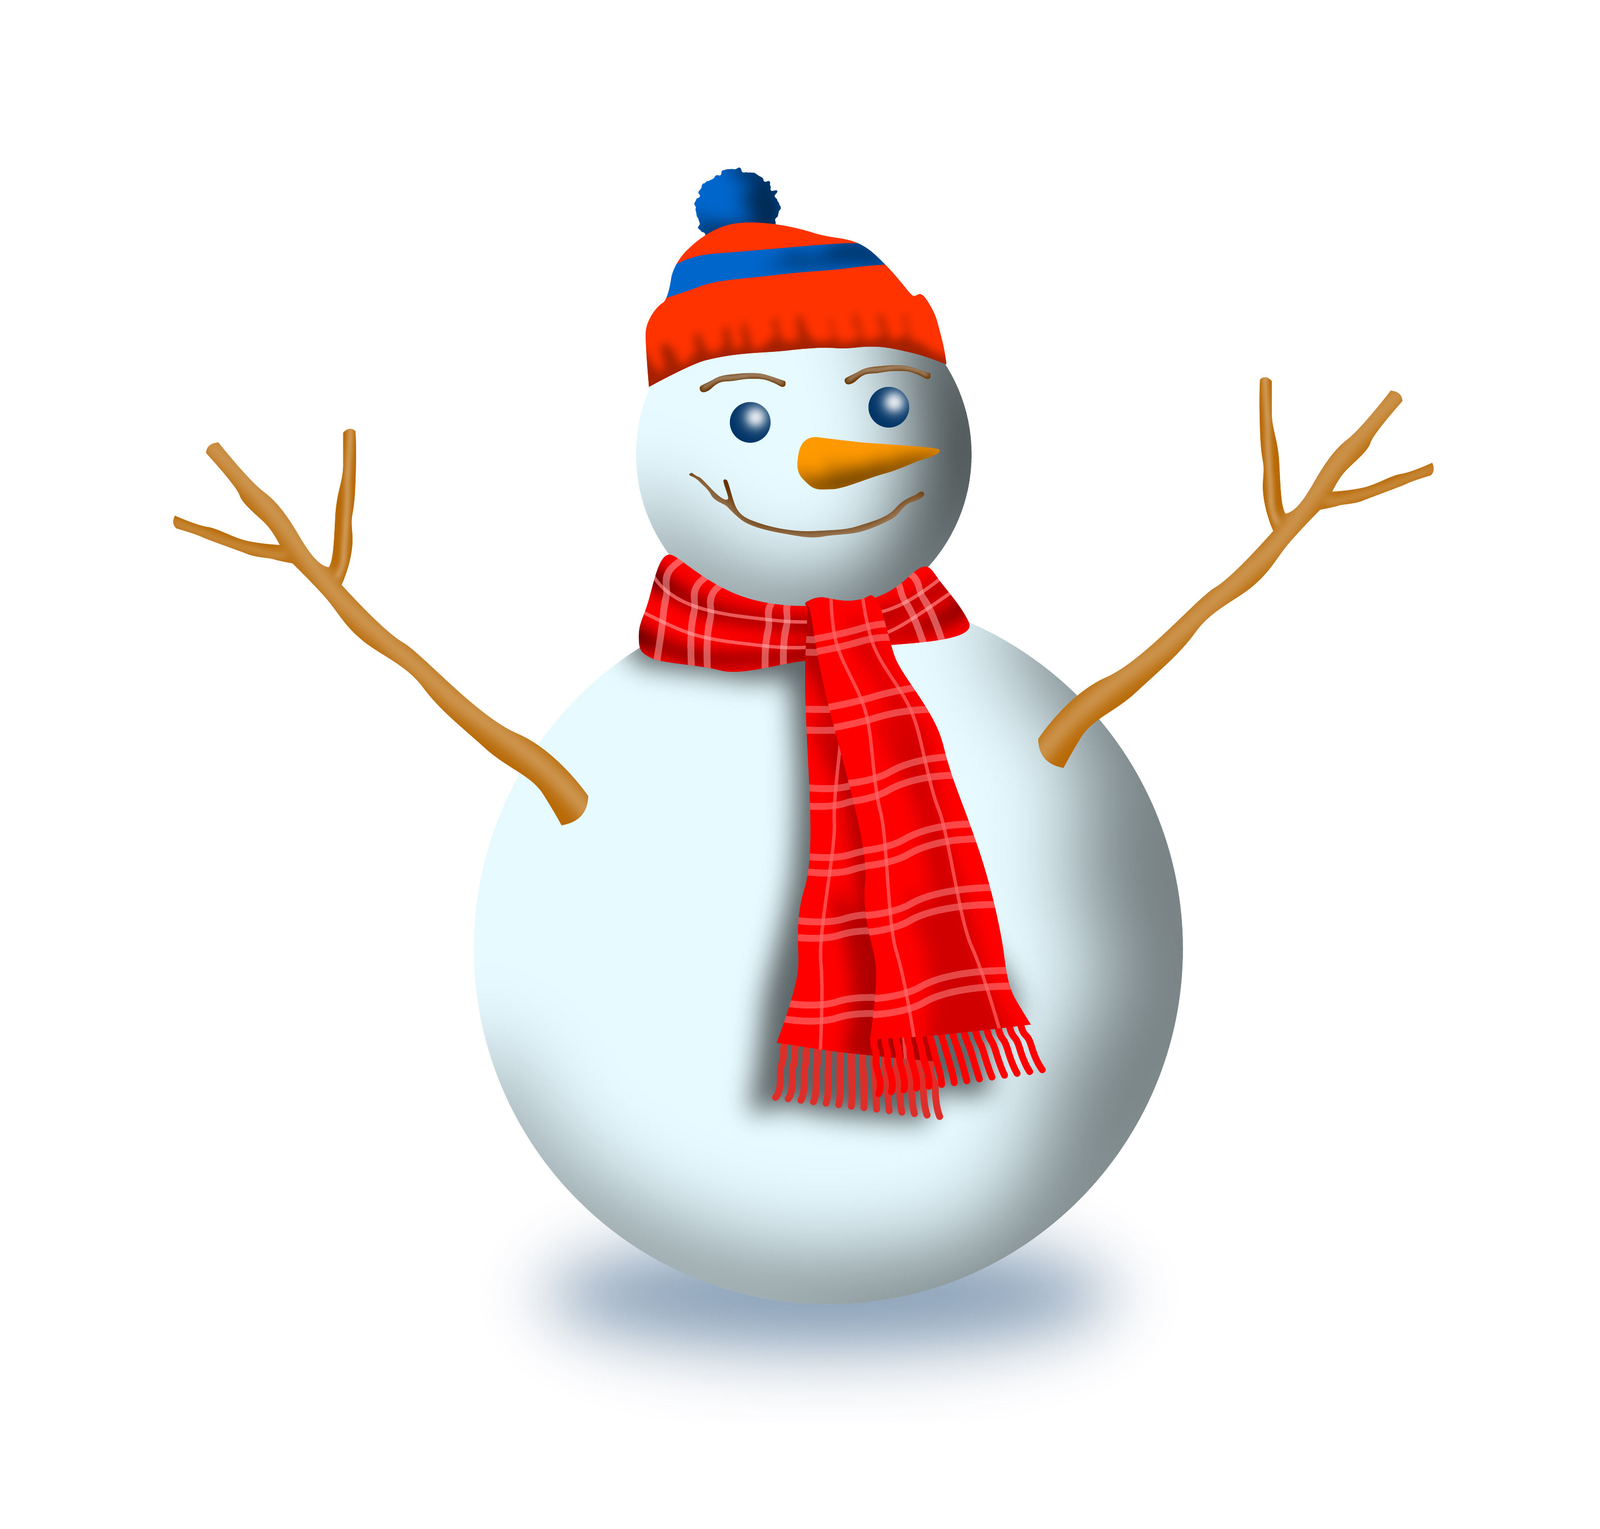 Snowman with scarf and beanie zk8  n8o